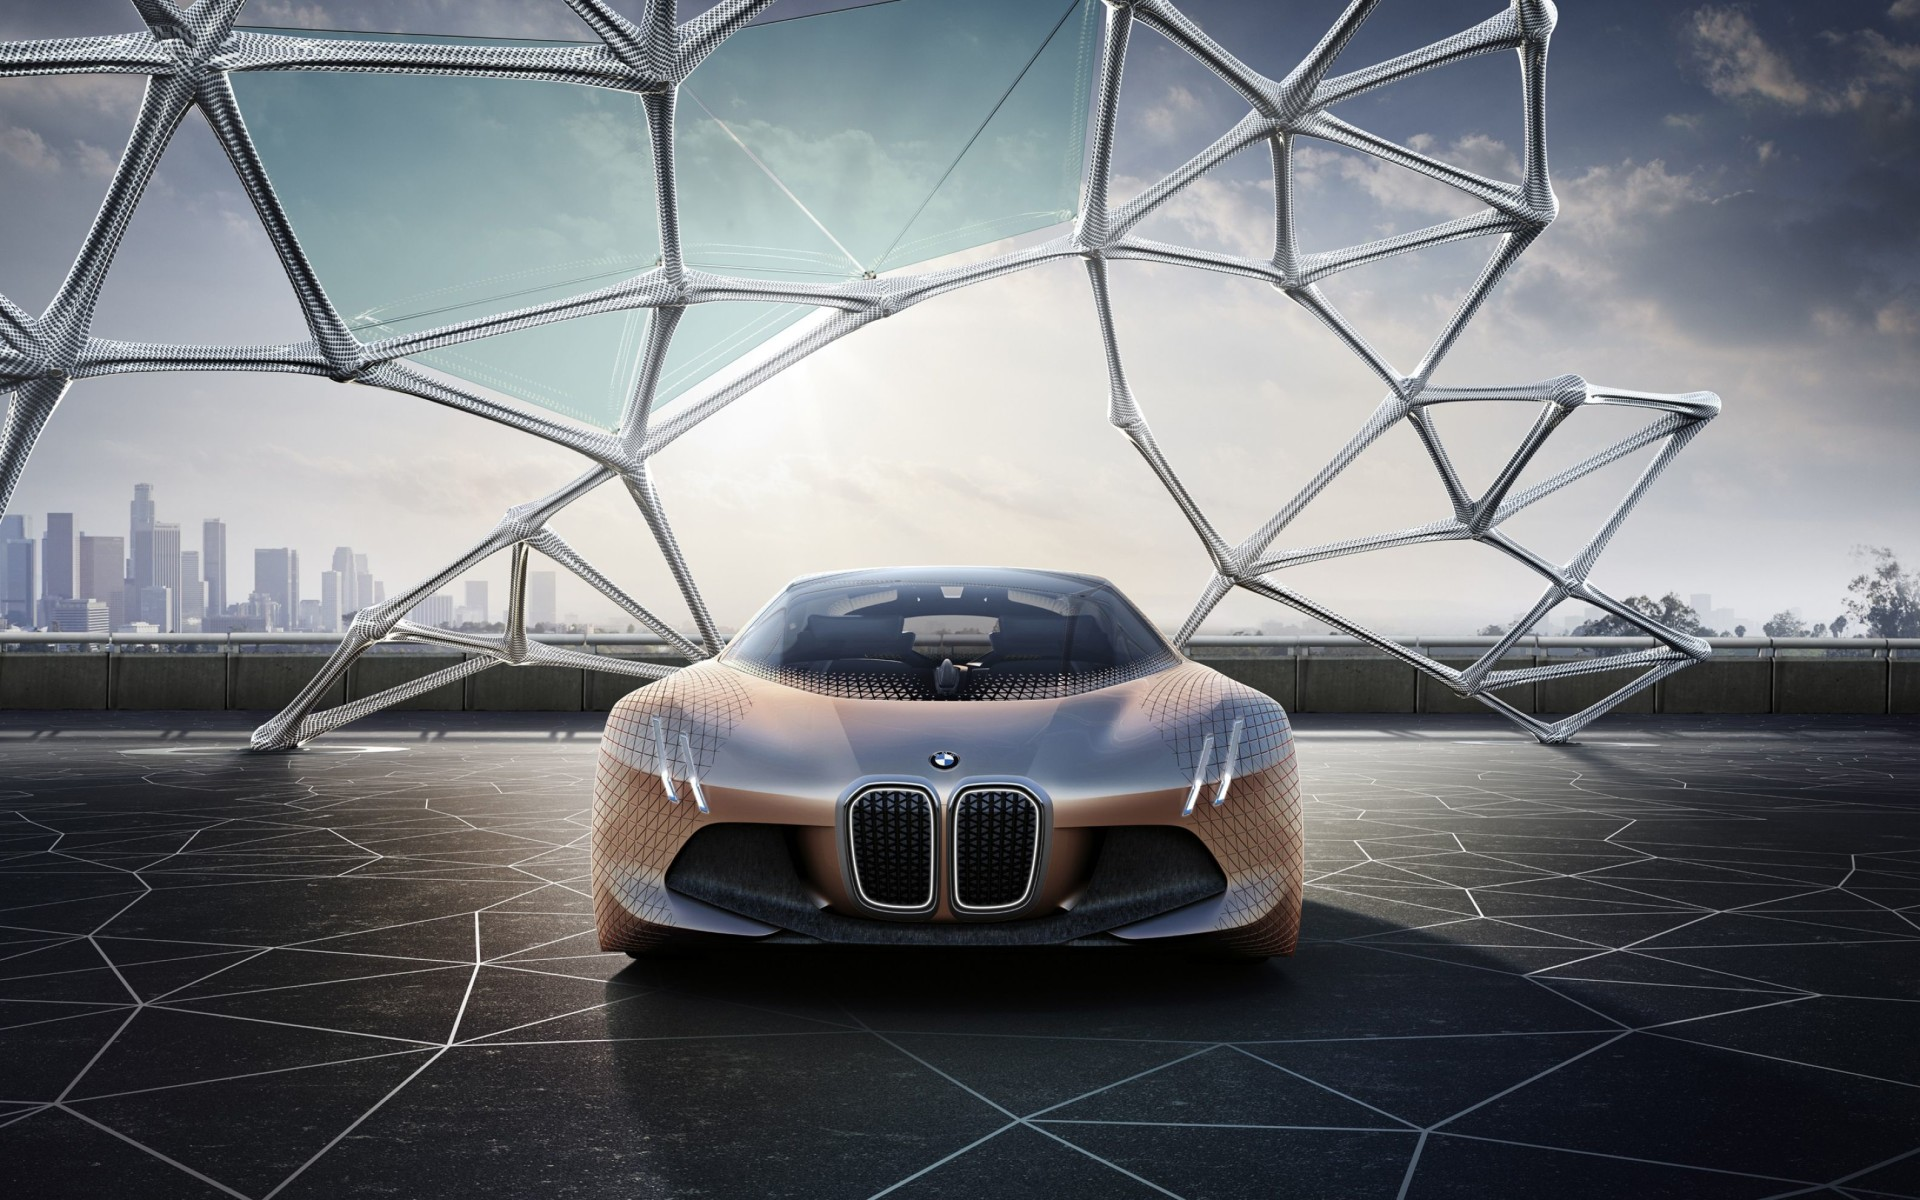 BMW Vision Next 100 Concept 4k Wide Wallpaper